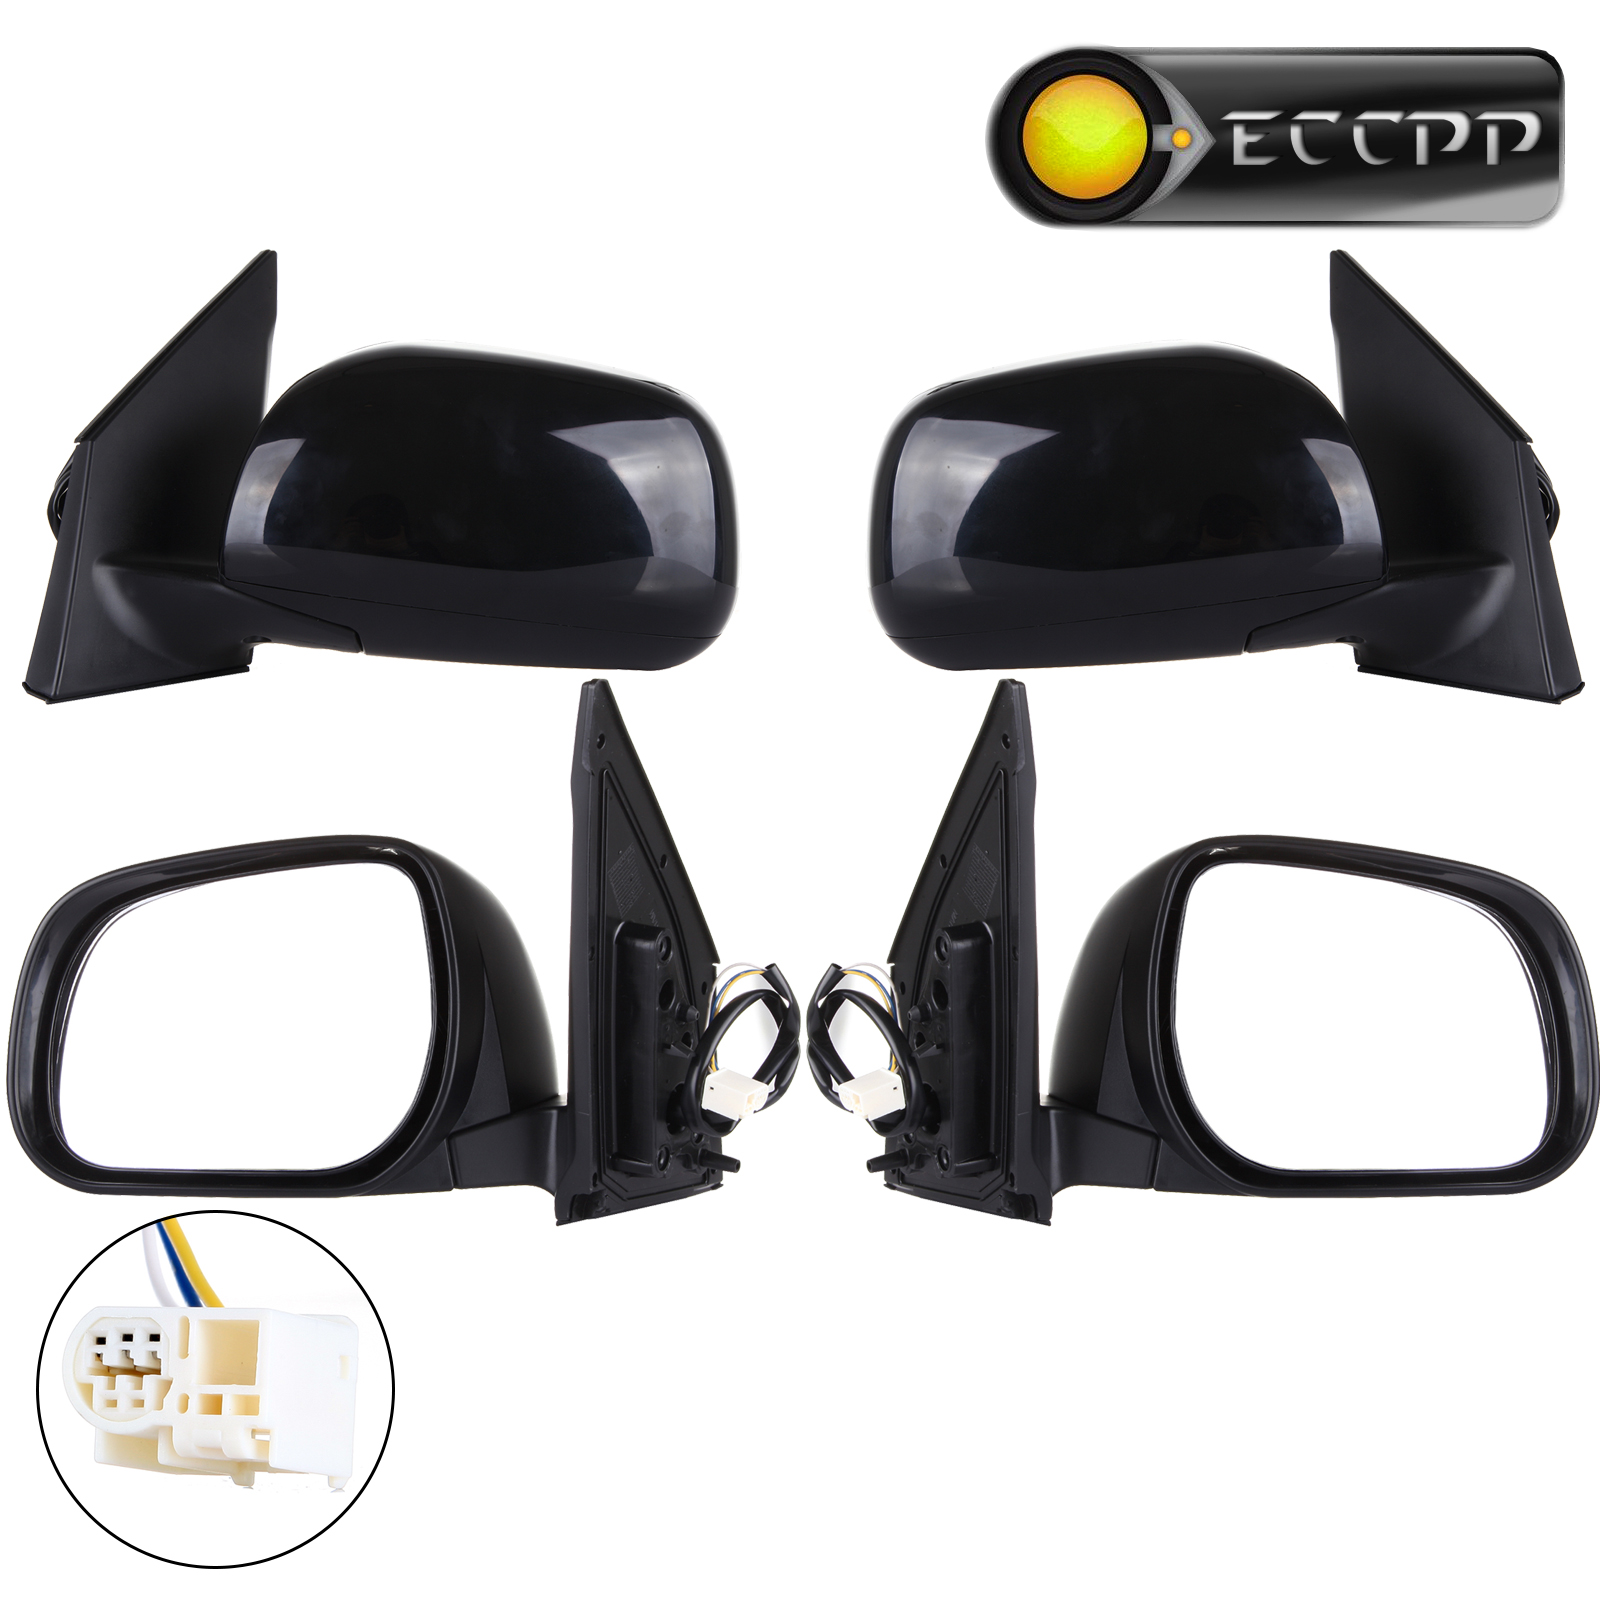 Eccpp-Power-font-b-Driver-b-font-And-Passenger-font-b-Side-b-font-View-Mirrors Cool toyota Camry 2008 Driver Side Mirror Cars Trend